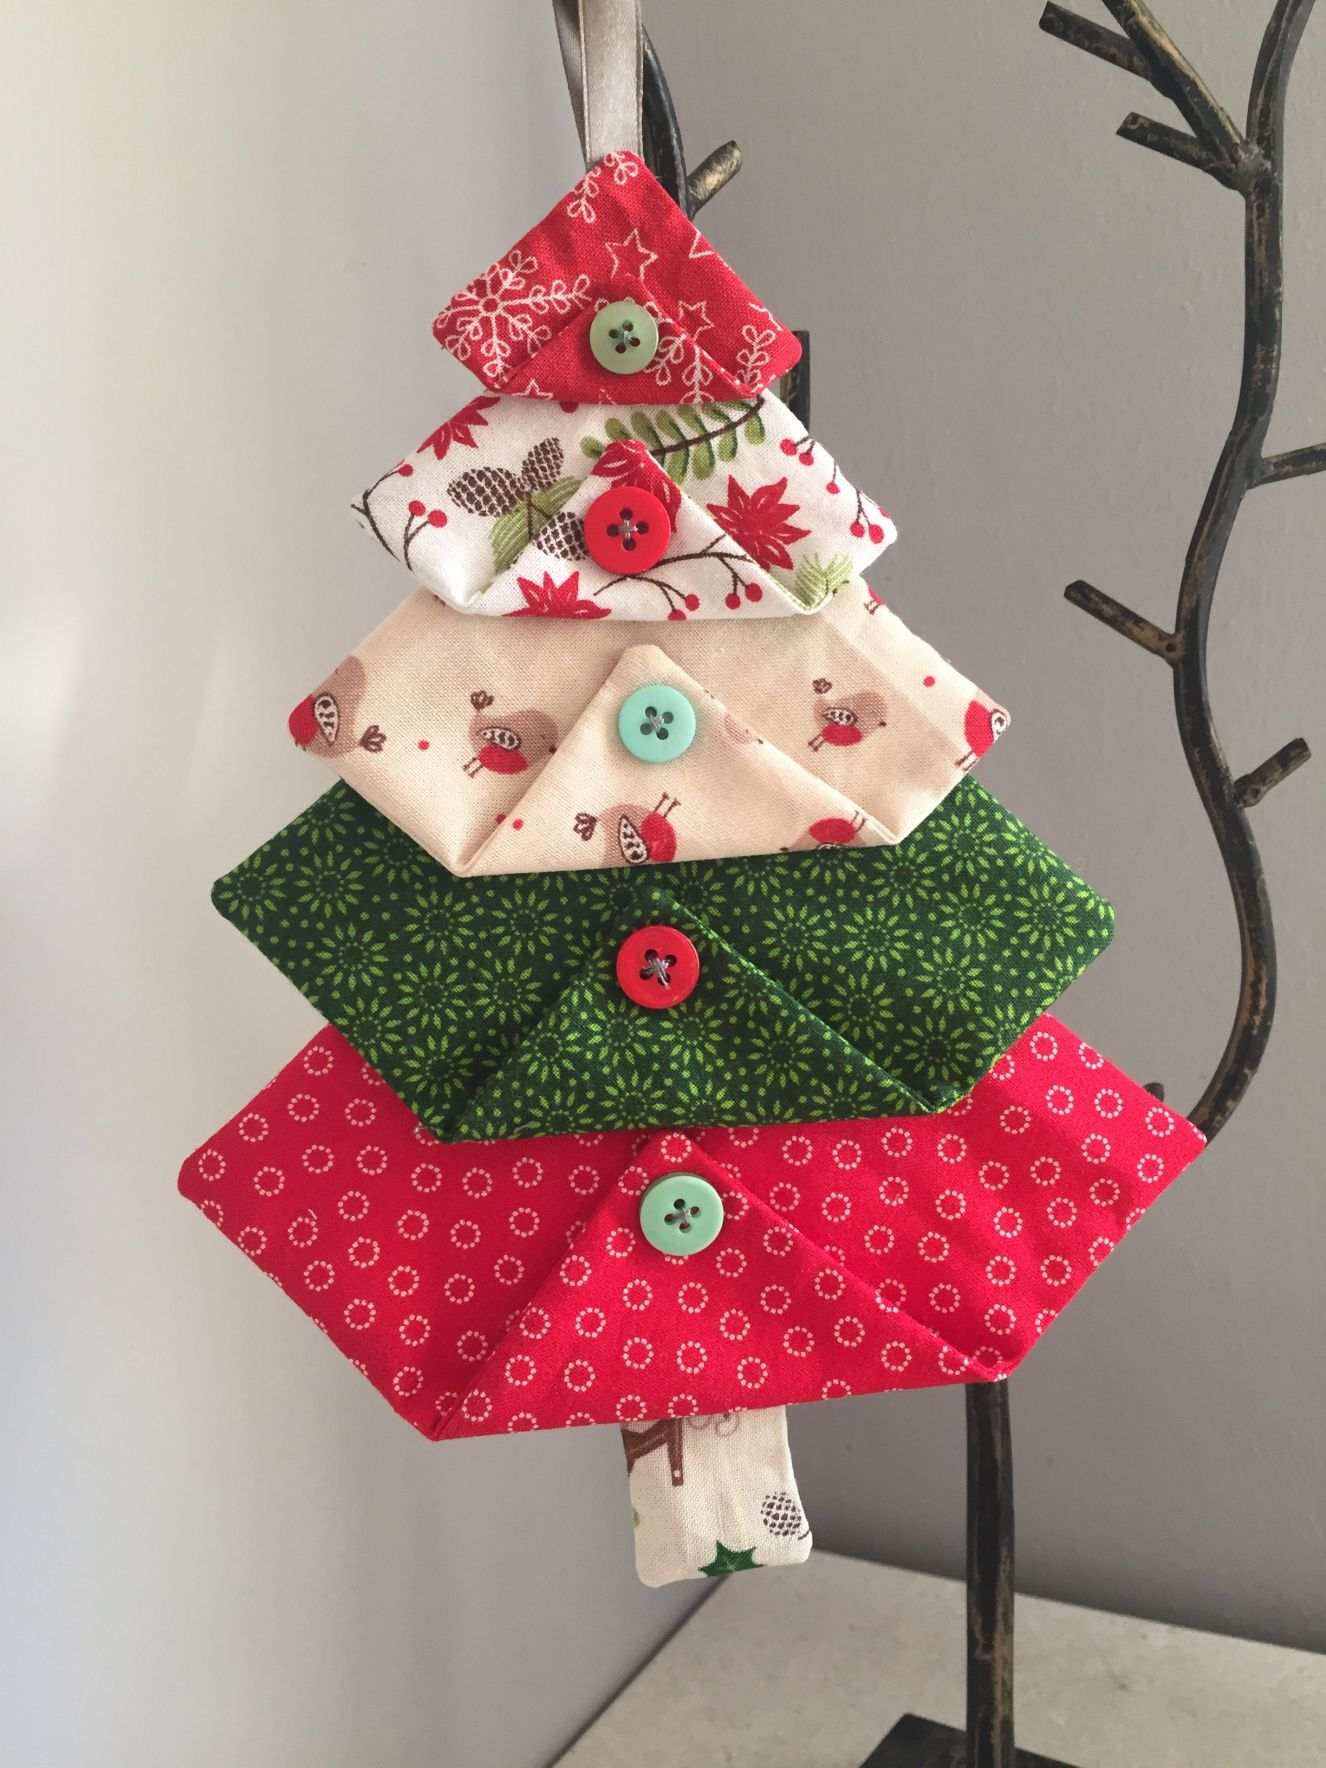 Fabric Christmas Tree Decorations Fabric Christmas Ornaments Fabric Christmas Decorations Fabric Christmas Trees